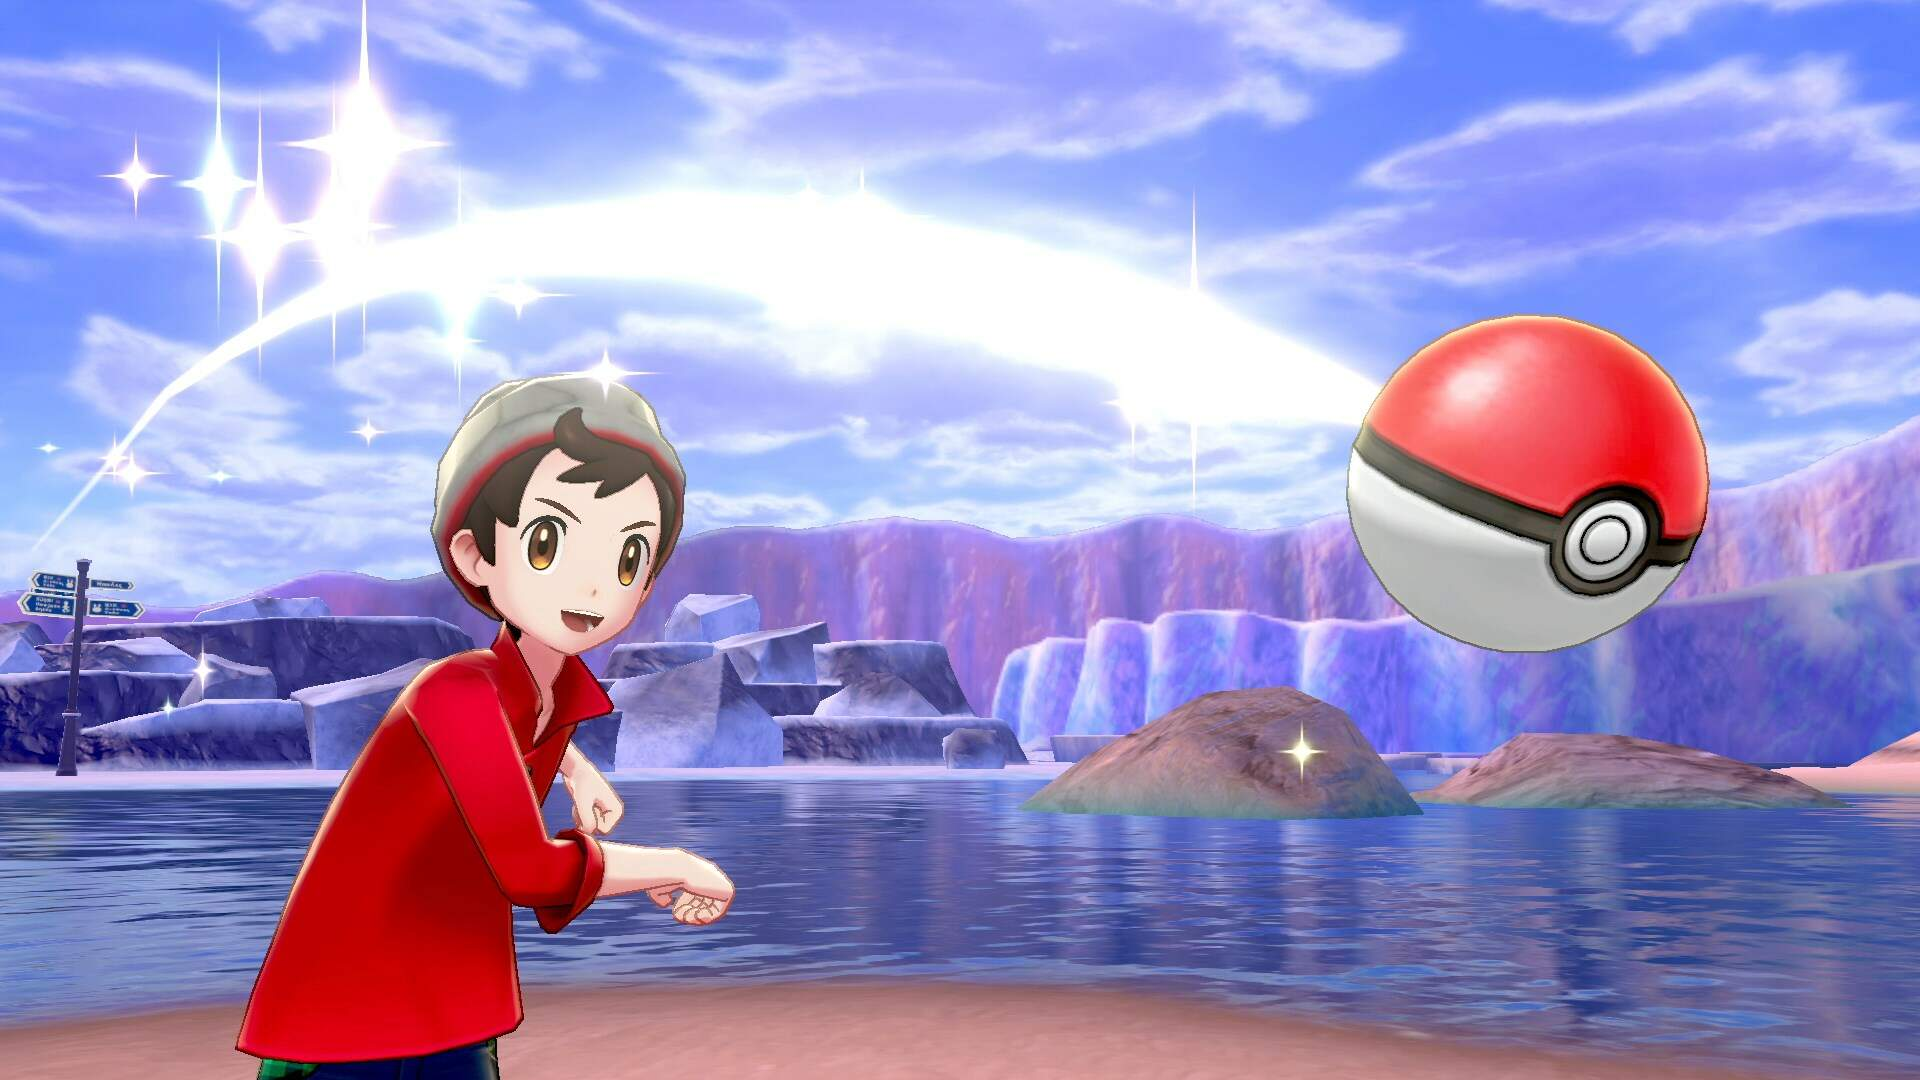 Pokemon Sword and Shield Character Customization Seemingly Confirmed by Uniqlo